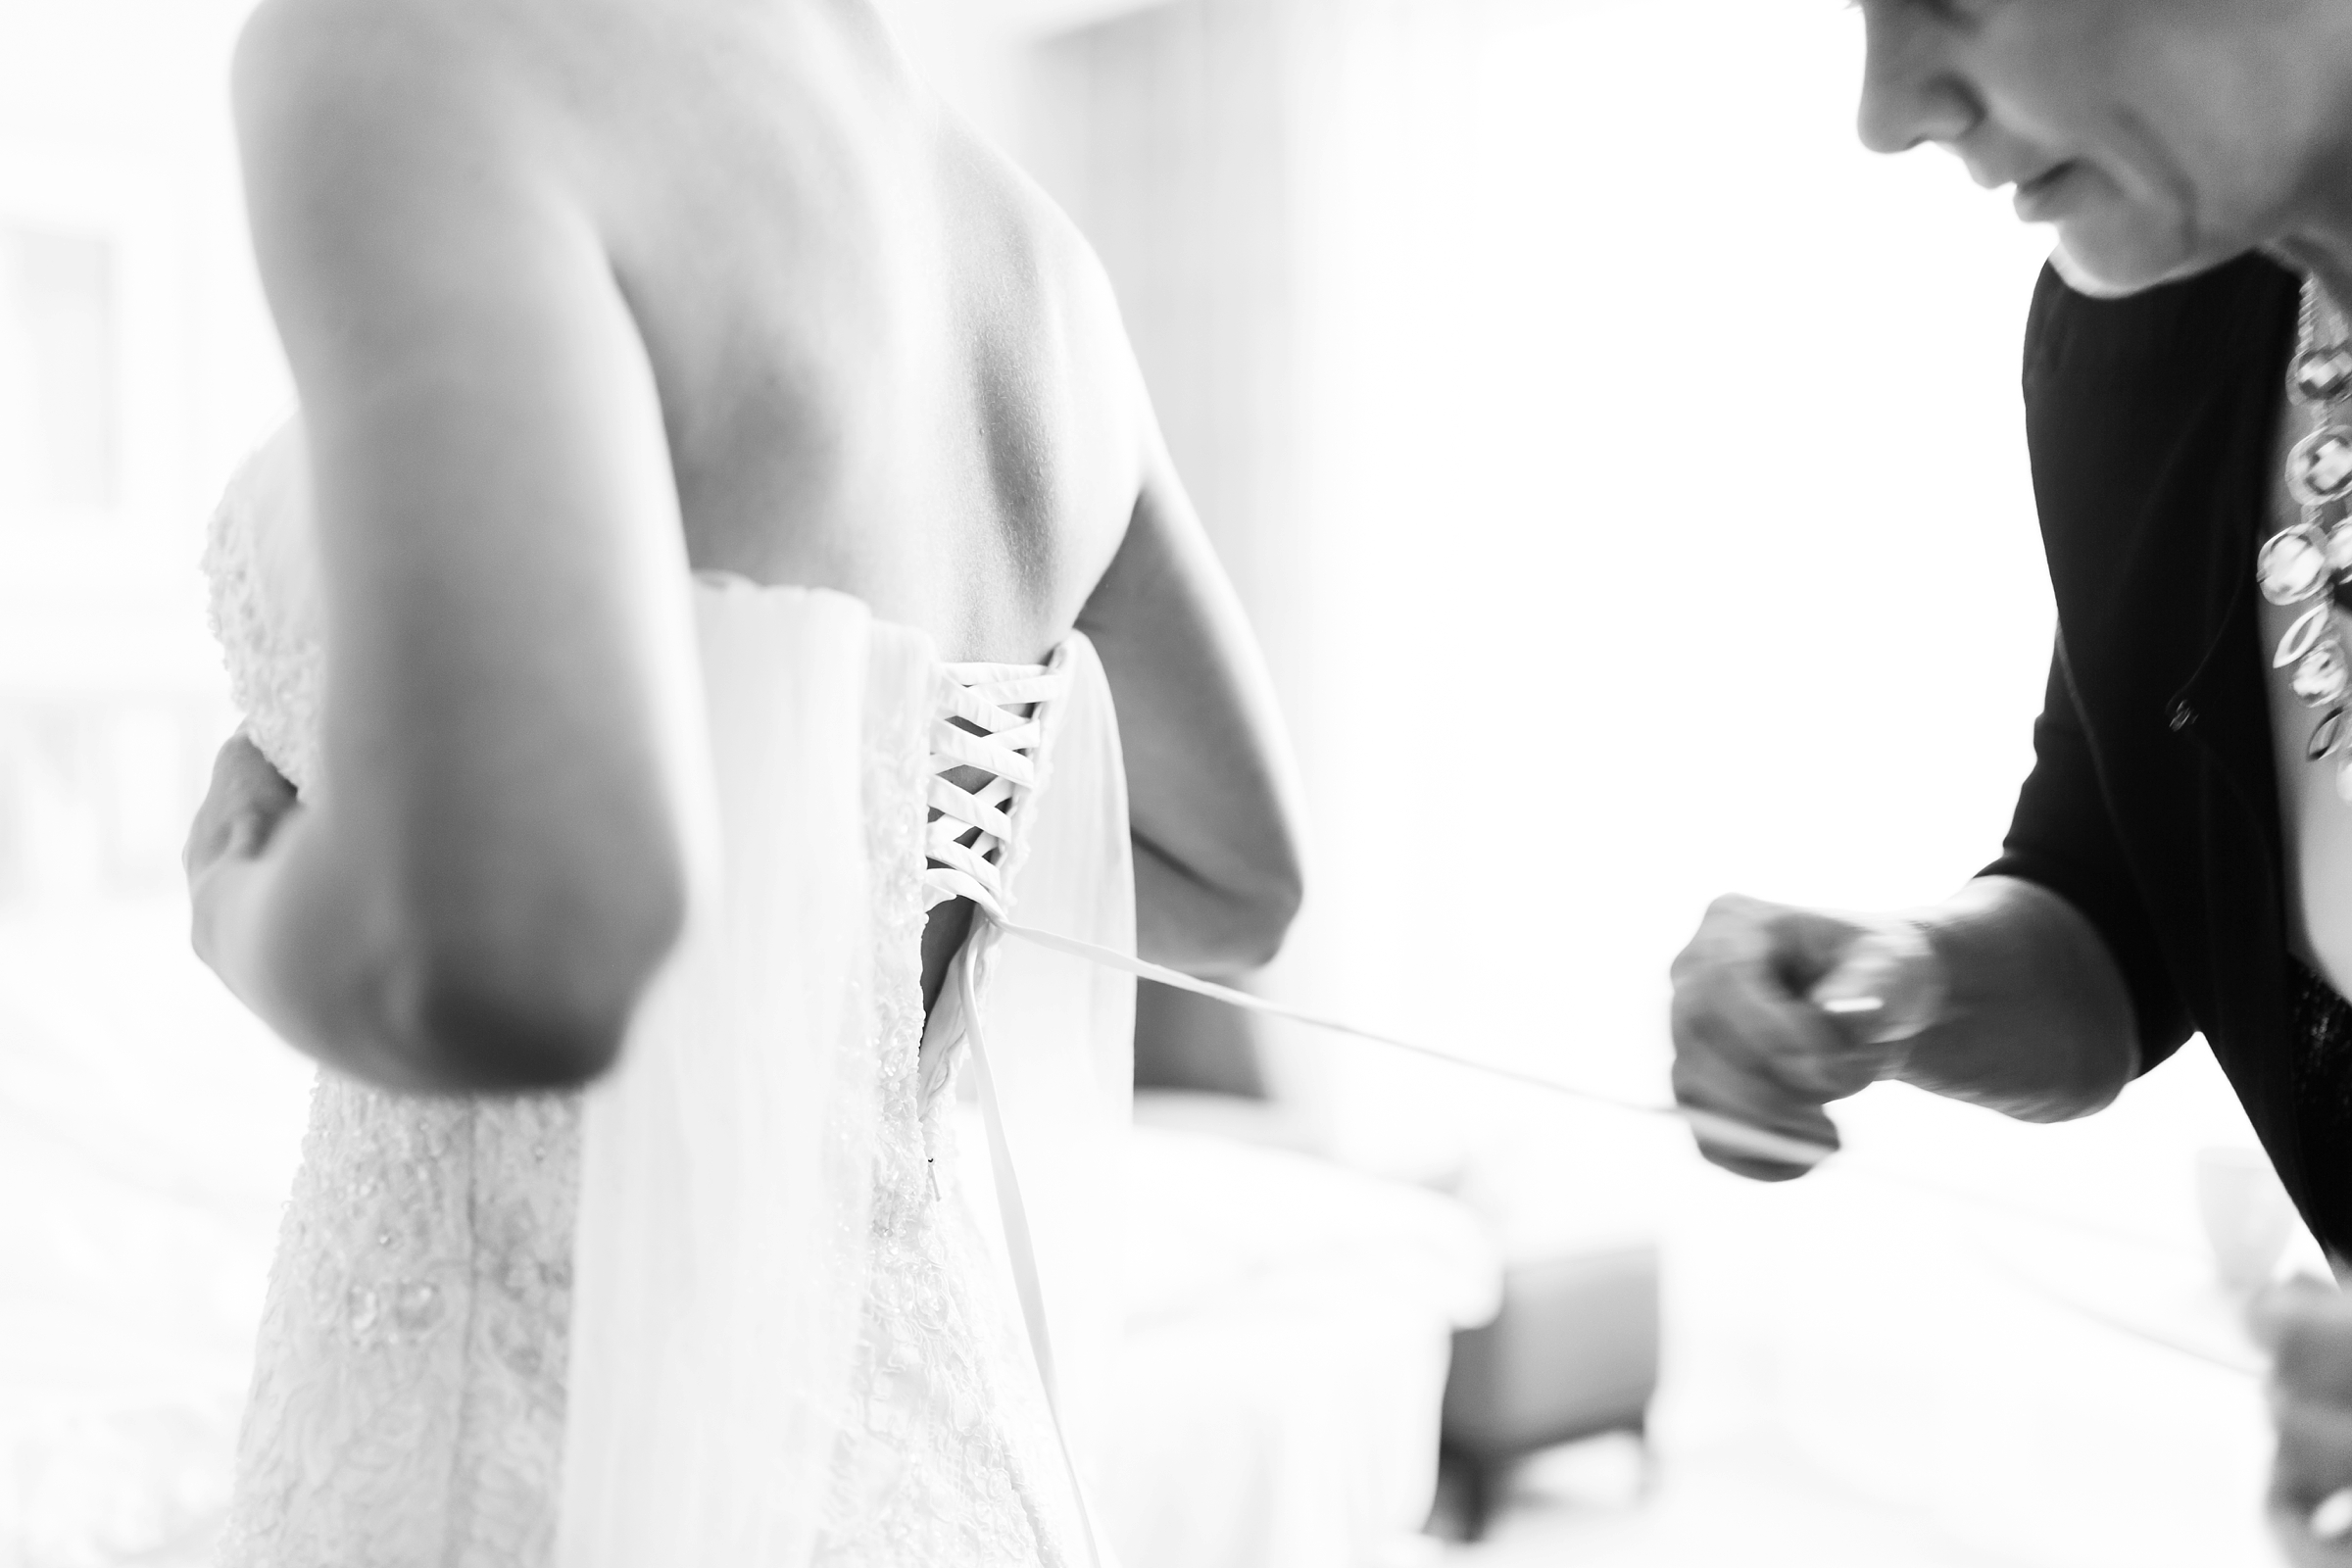 Hochzeitsfotograf-Mainz-Hyatt-Brautkleid-schnueren-Getting-Ready-SW